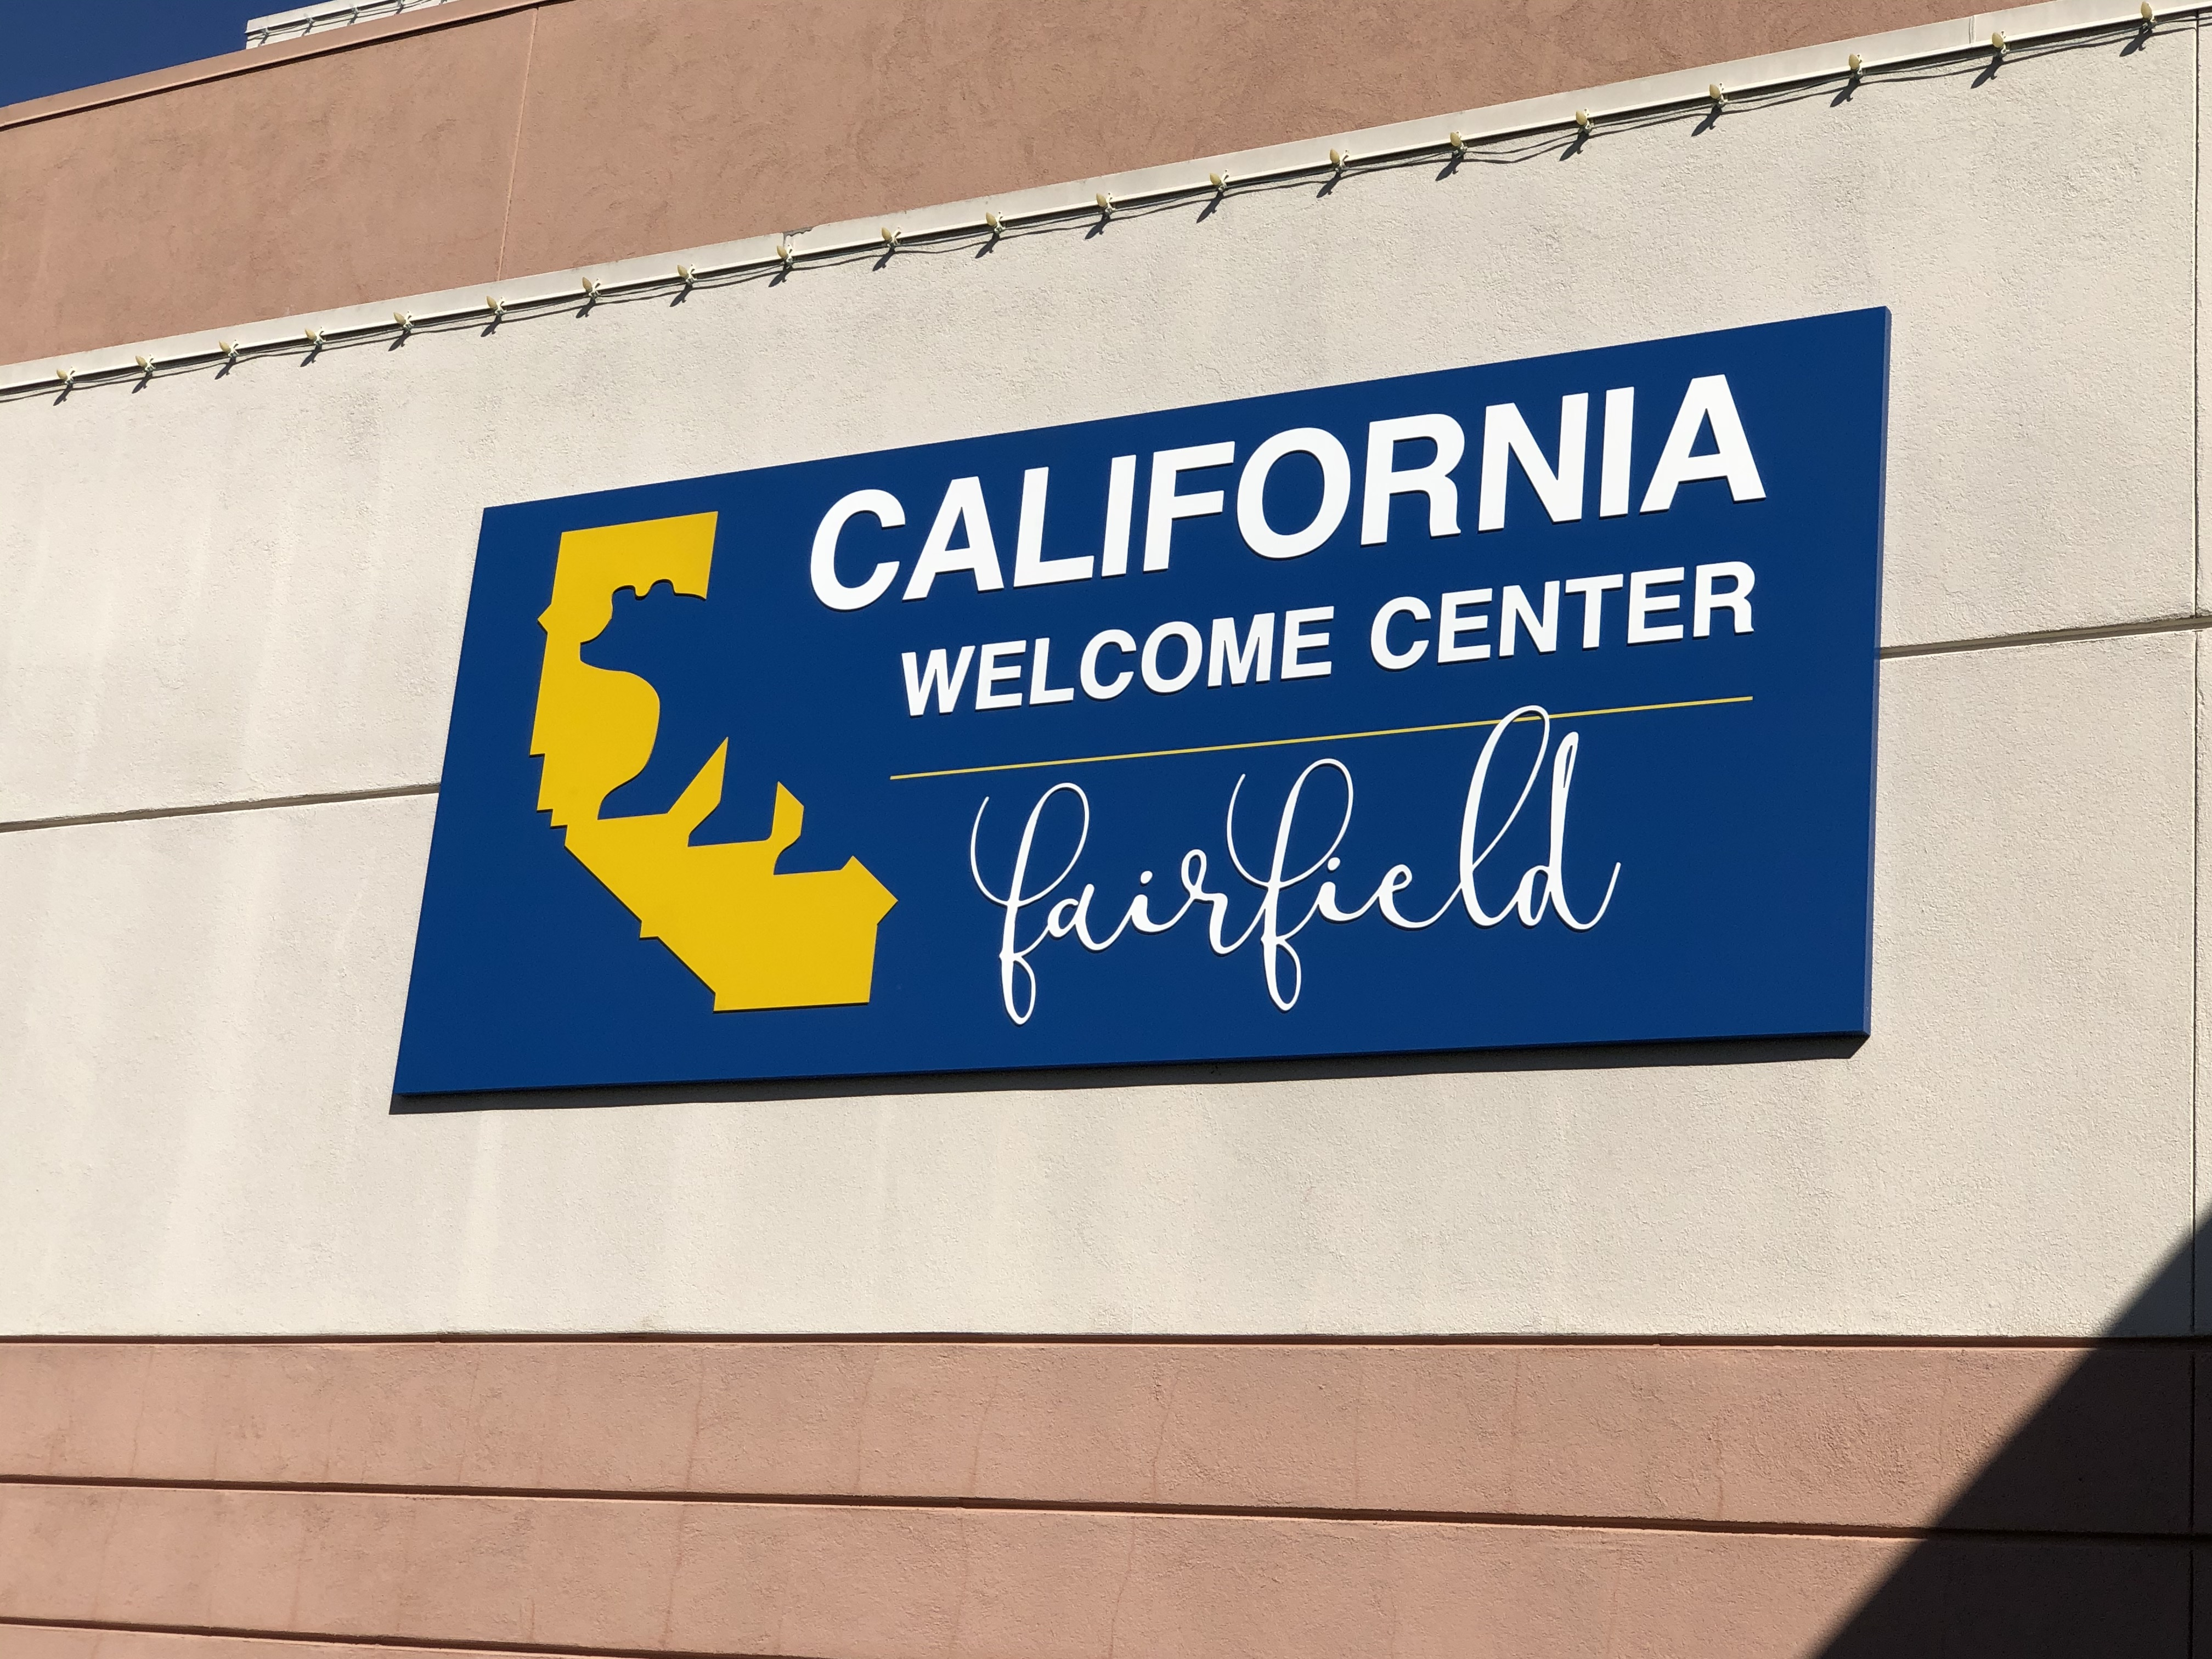 Image of California Welcome Center, Fairfield